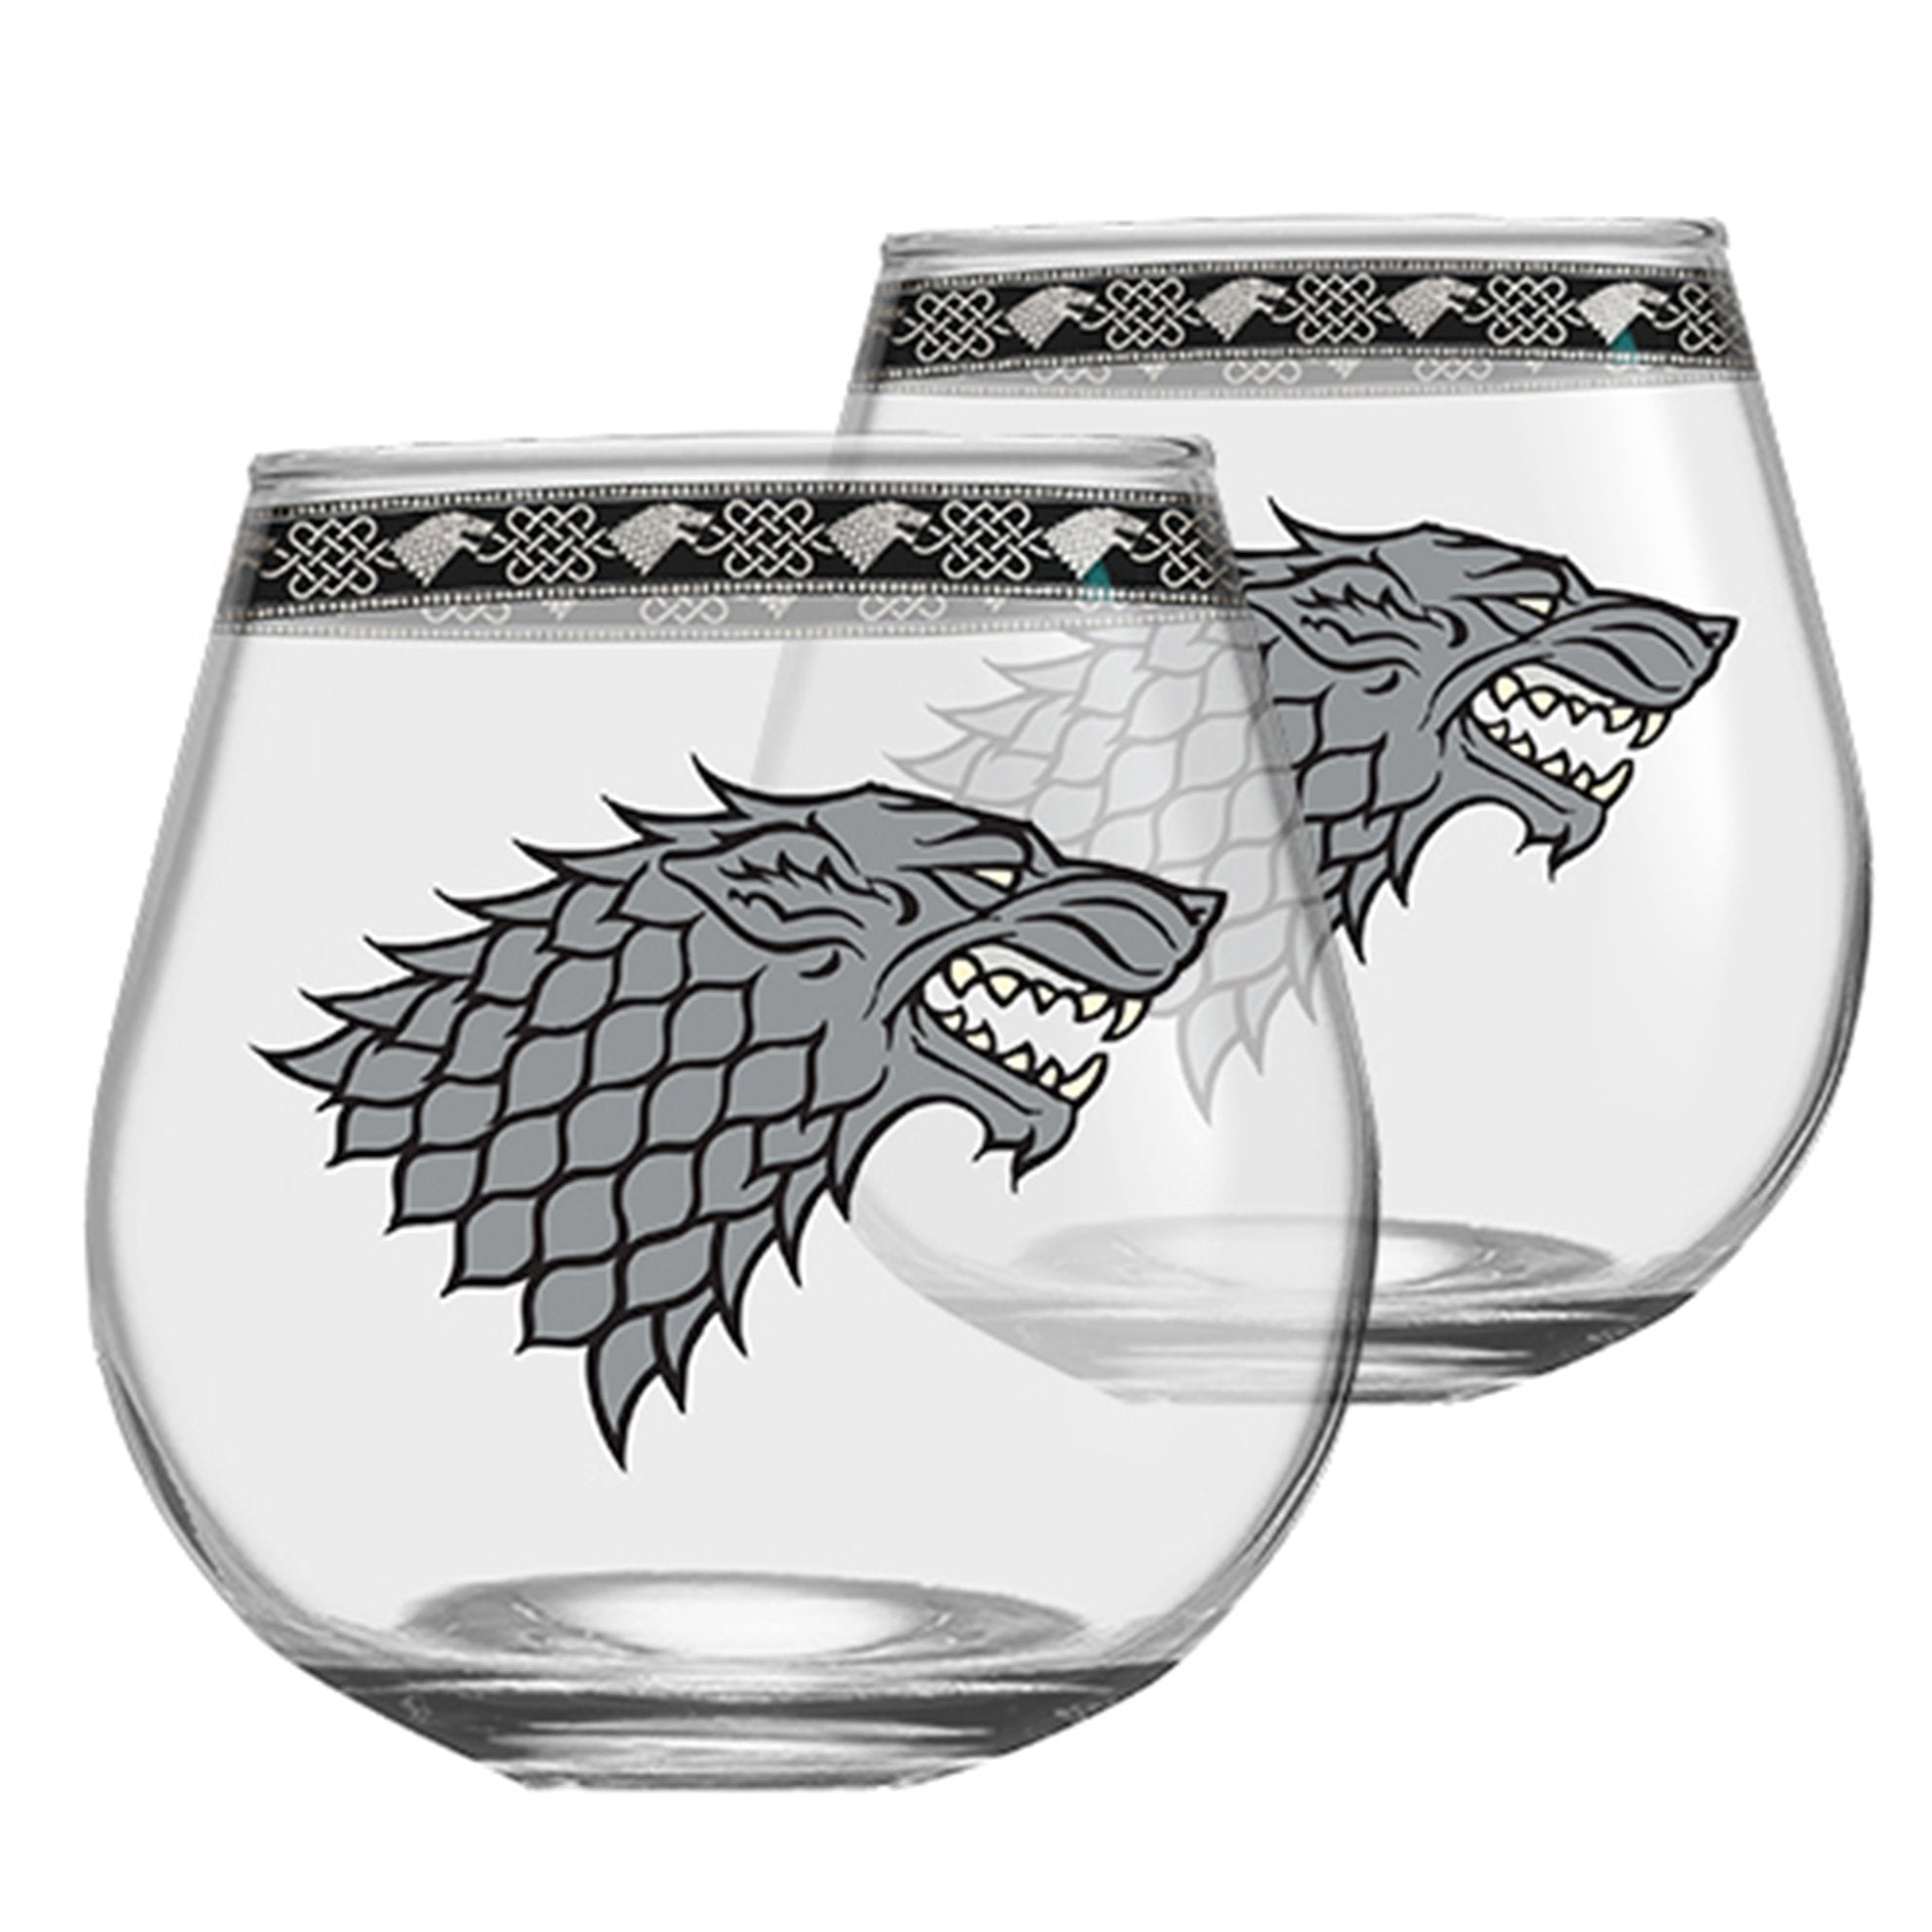 Licensing Essentials Game of Thrones House Stark Globe Glasses